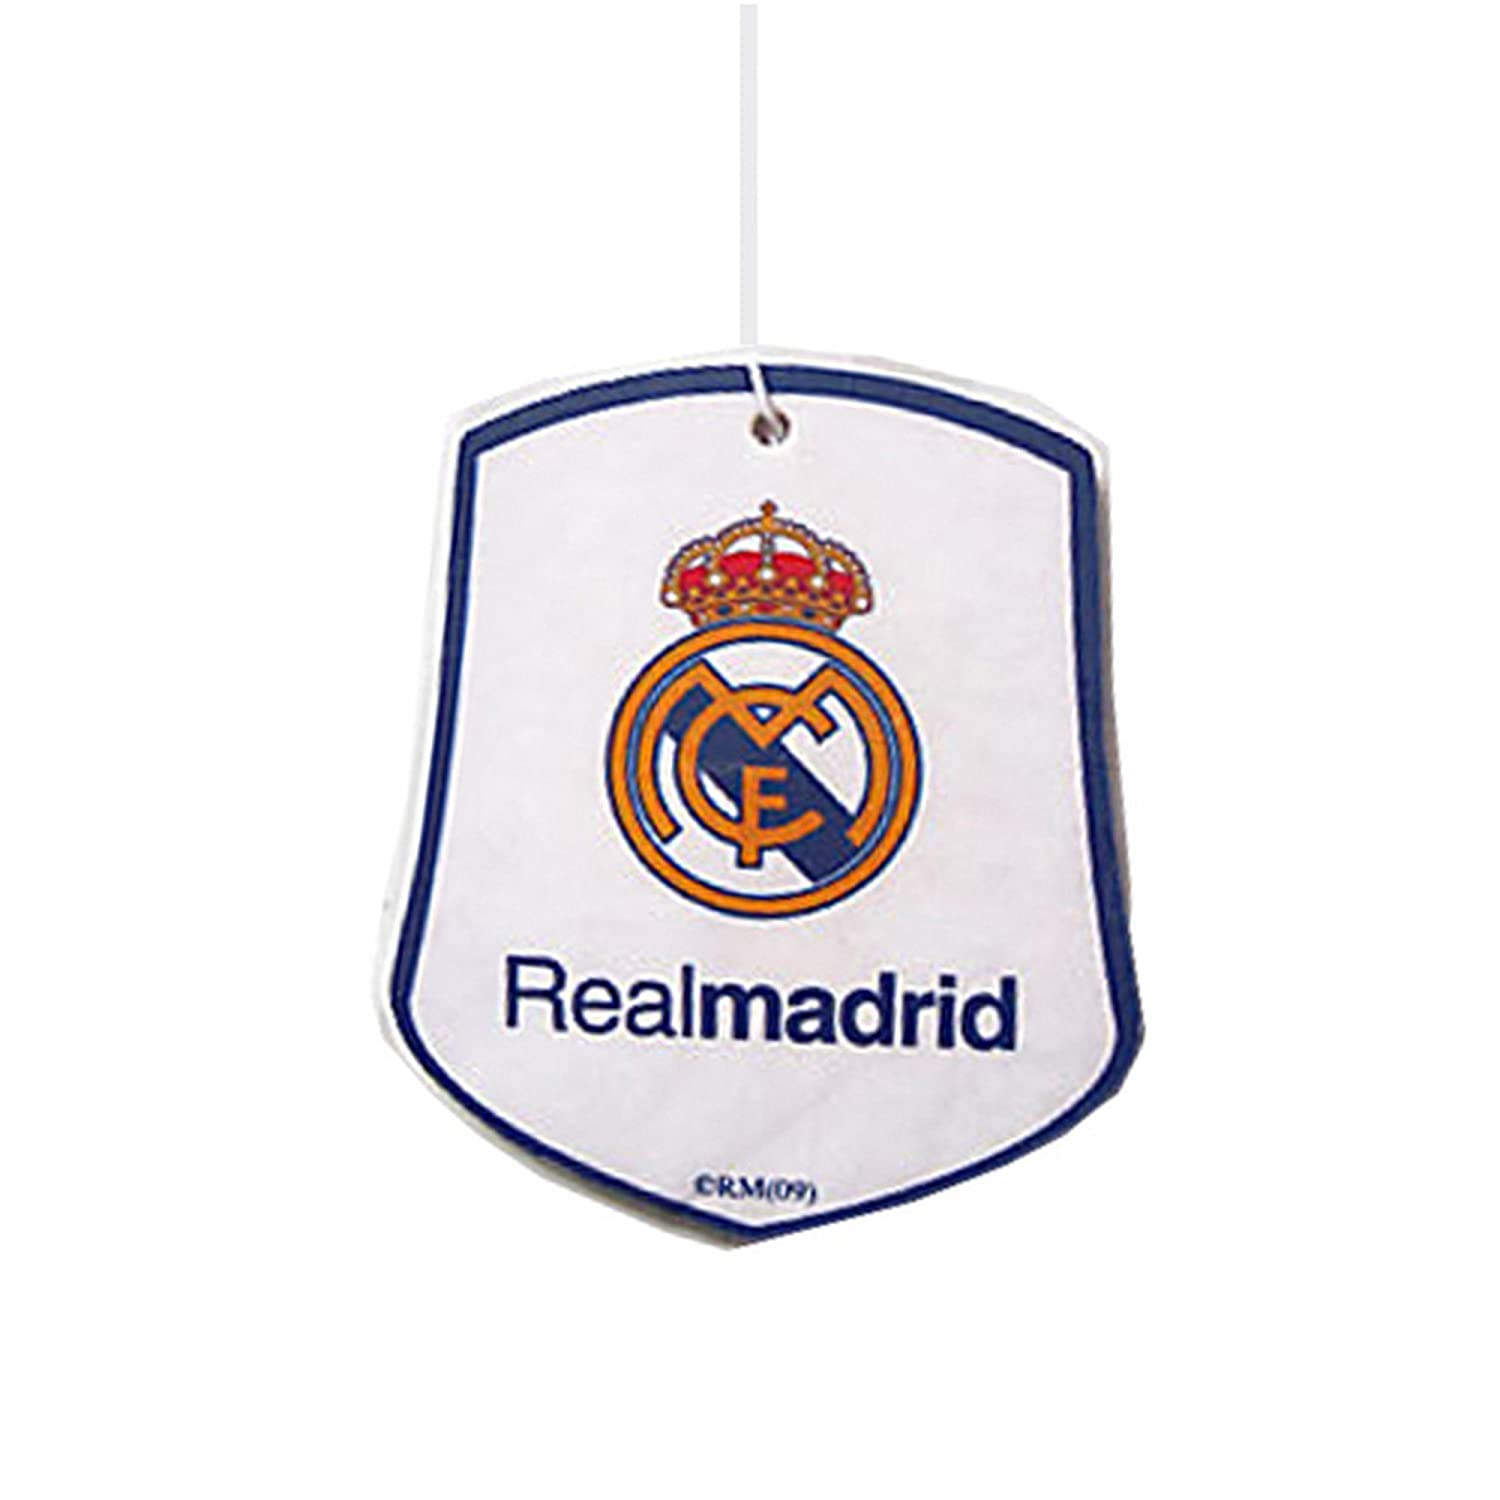 Real Madrid Cf Official Football Crest Car Air Freshener One Size